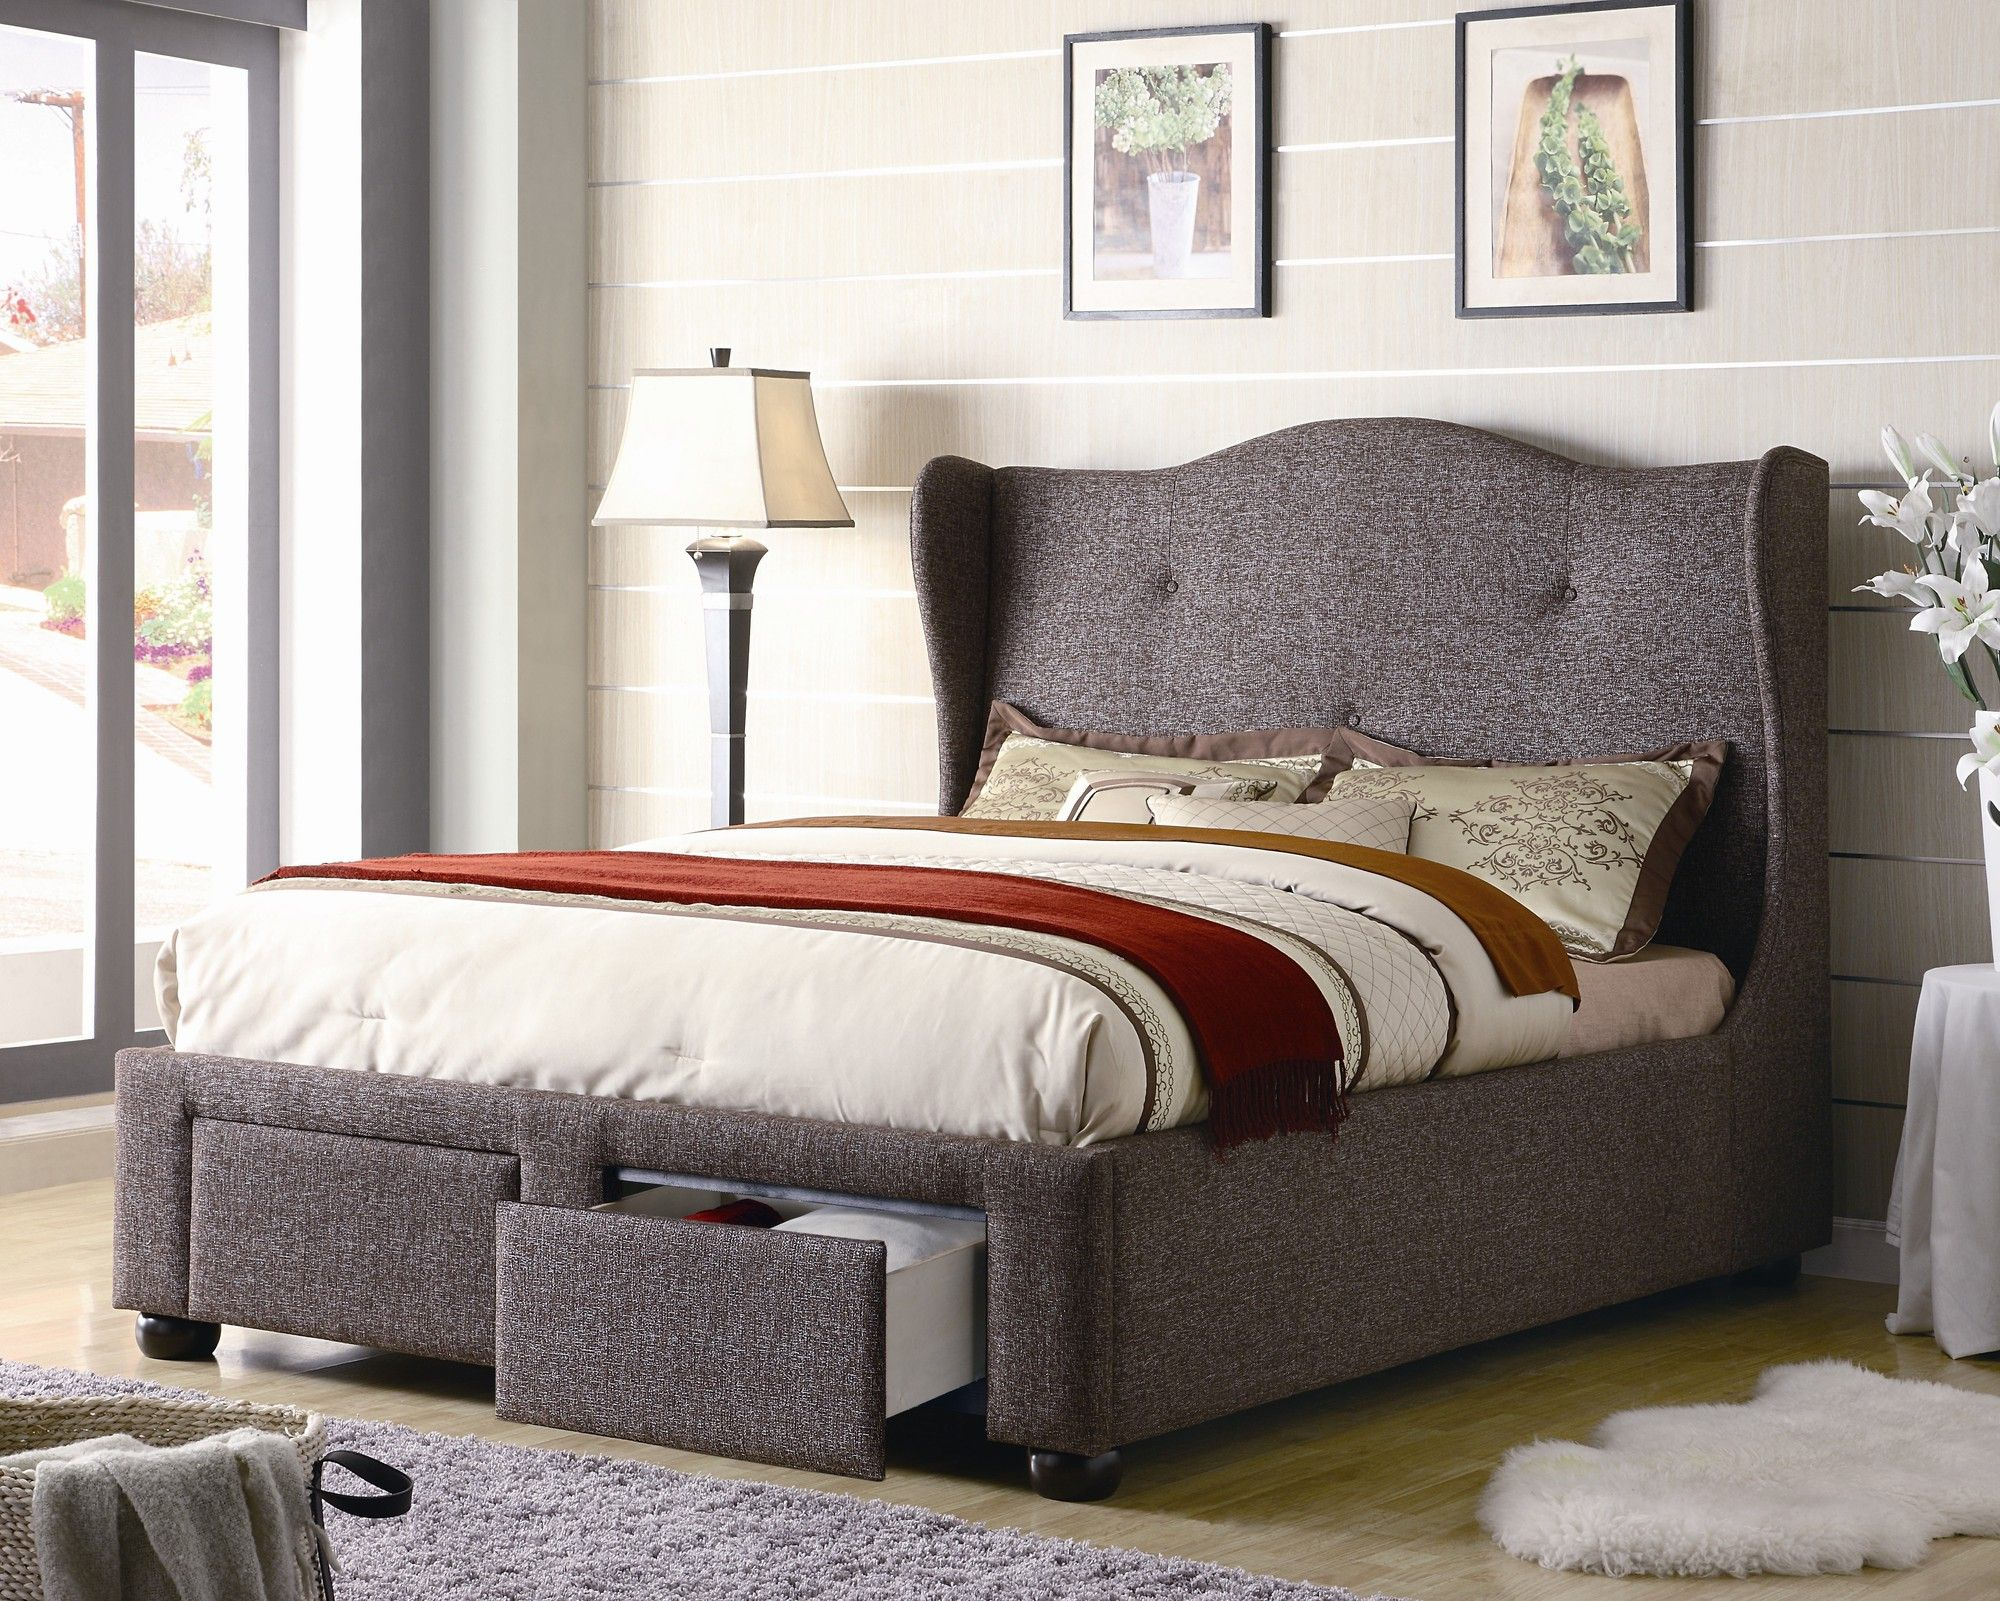 Wildon Home ® Buxton Tweed Wing Bed in Brown Queen